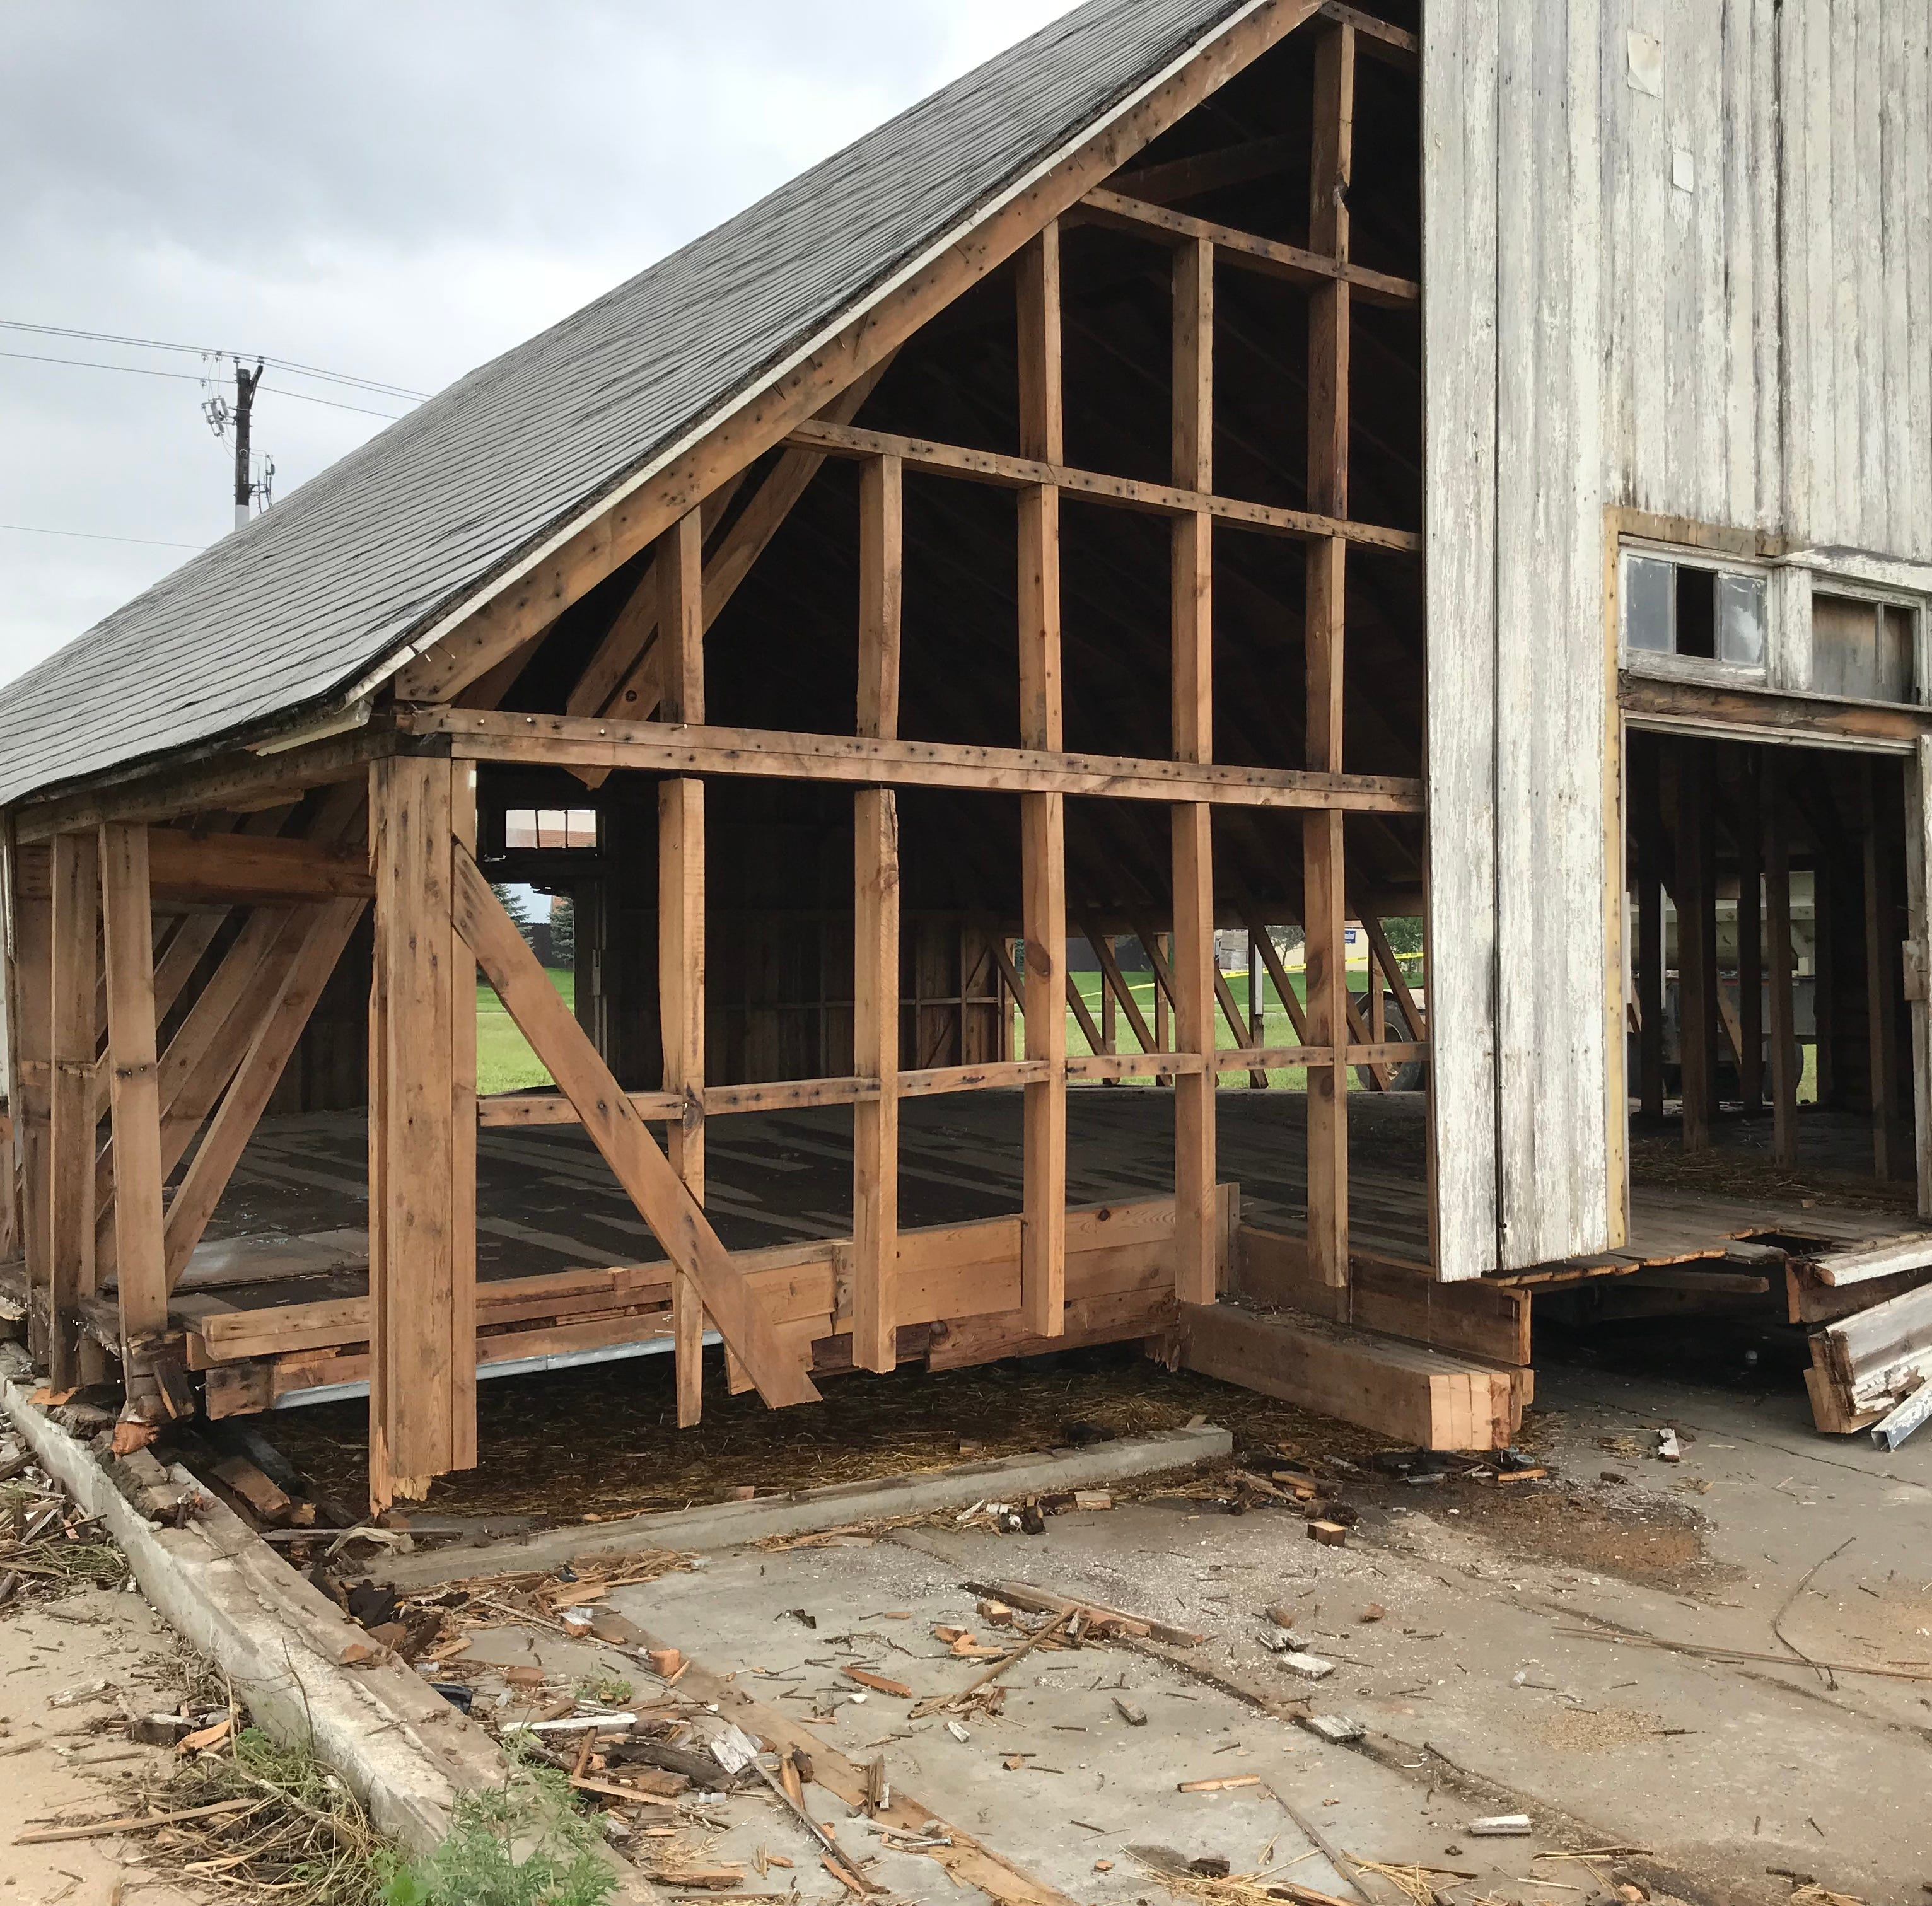 Lake Lorraine landmark barn coming down, wood reclaimed for future use